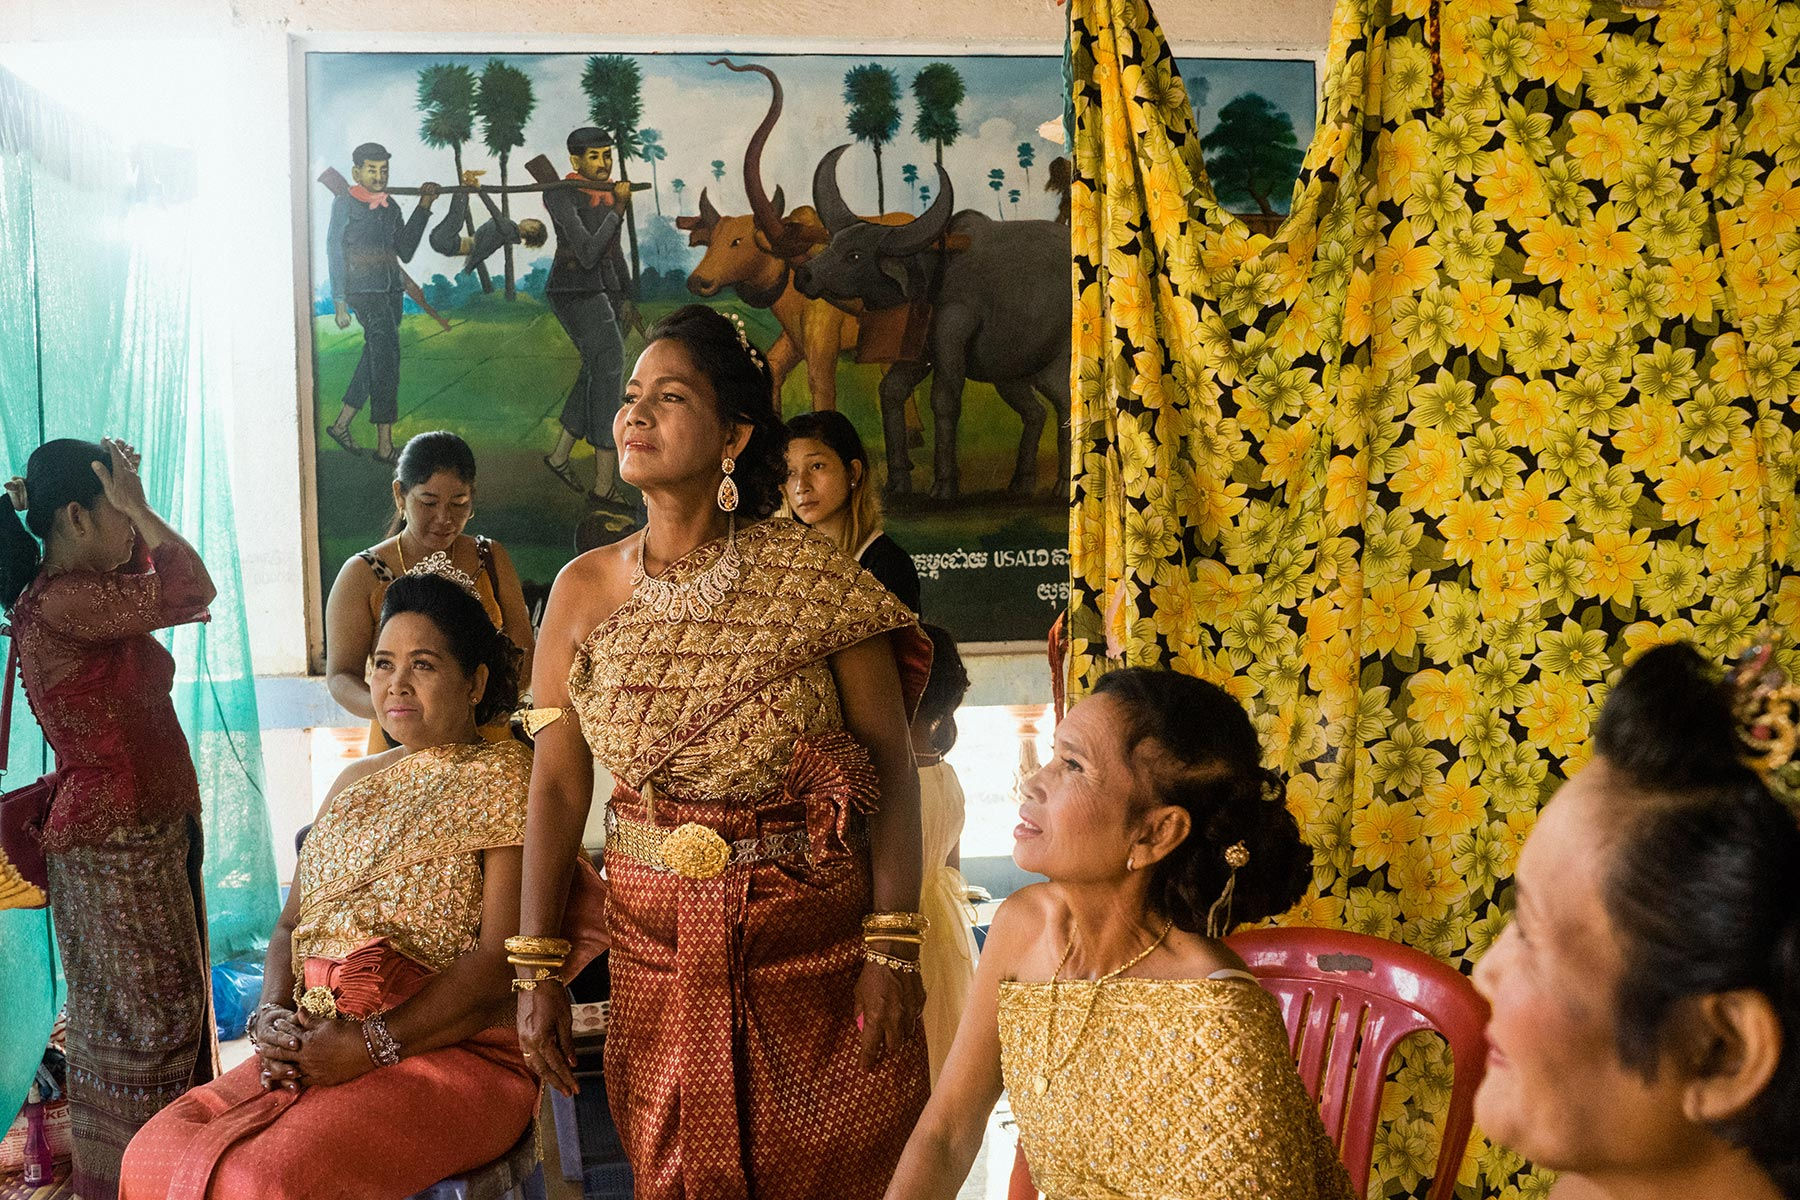 As they get ready for the remarriage ceremony, some of the brides sit in front of a mural illustrating war crimes carried out by the Khmer Rouge.